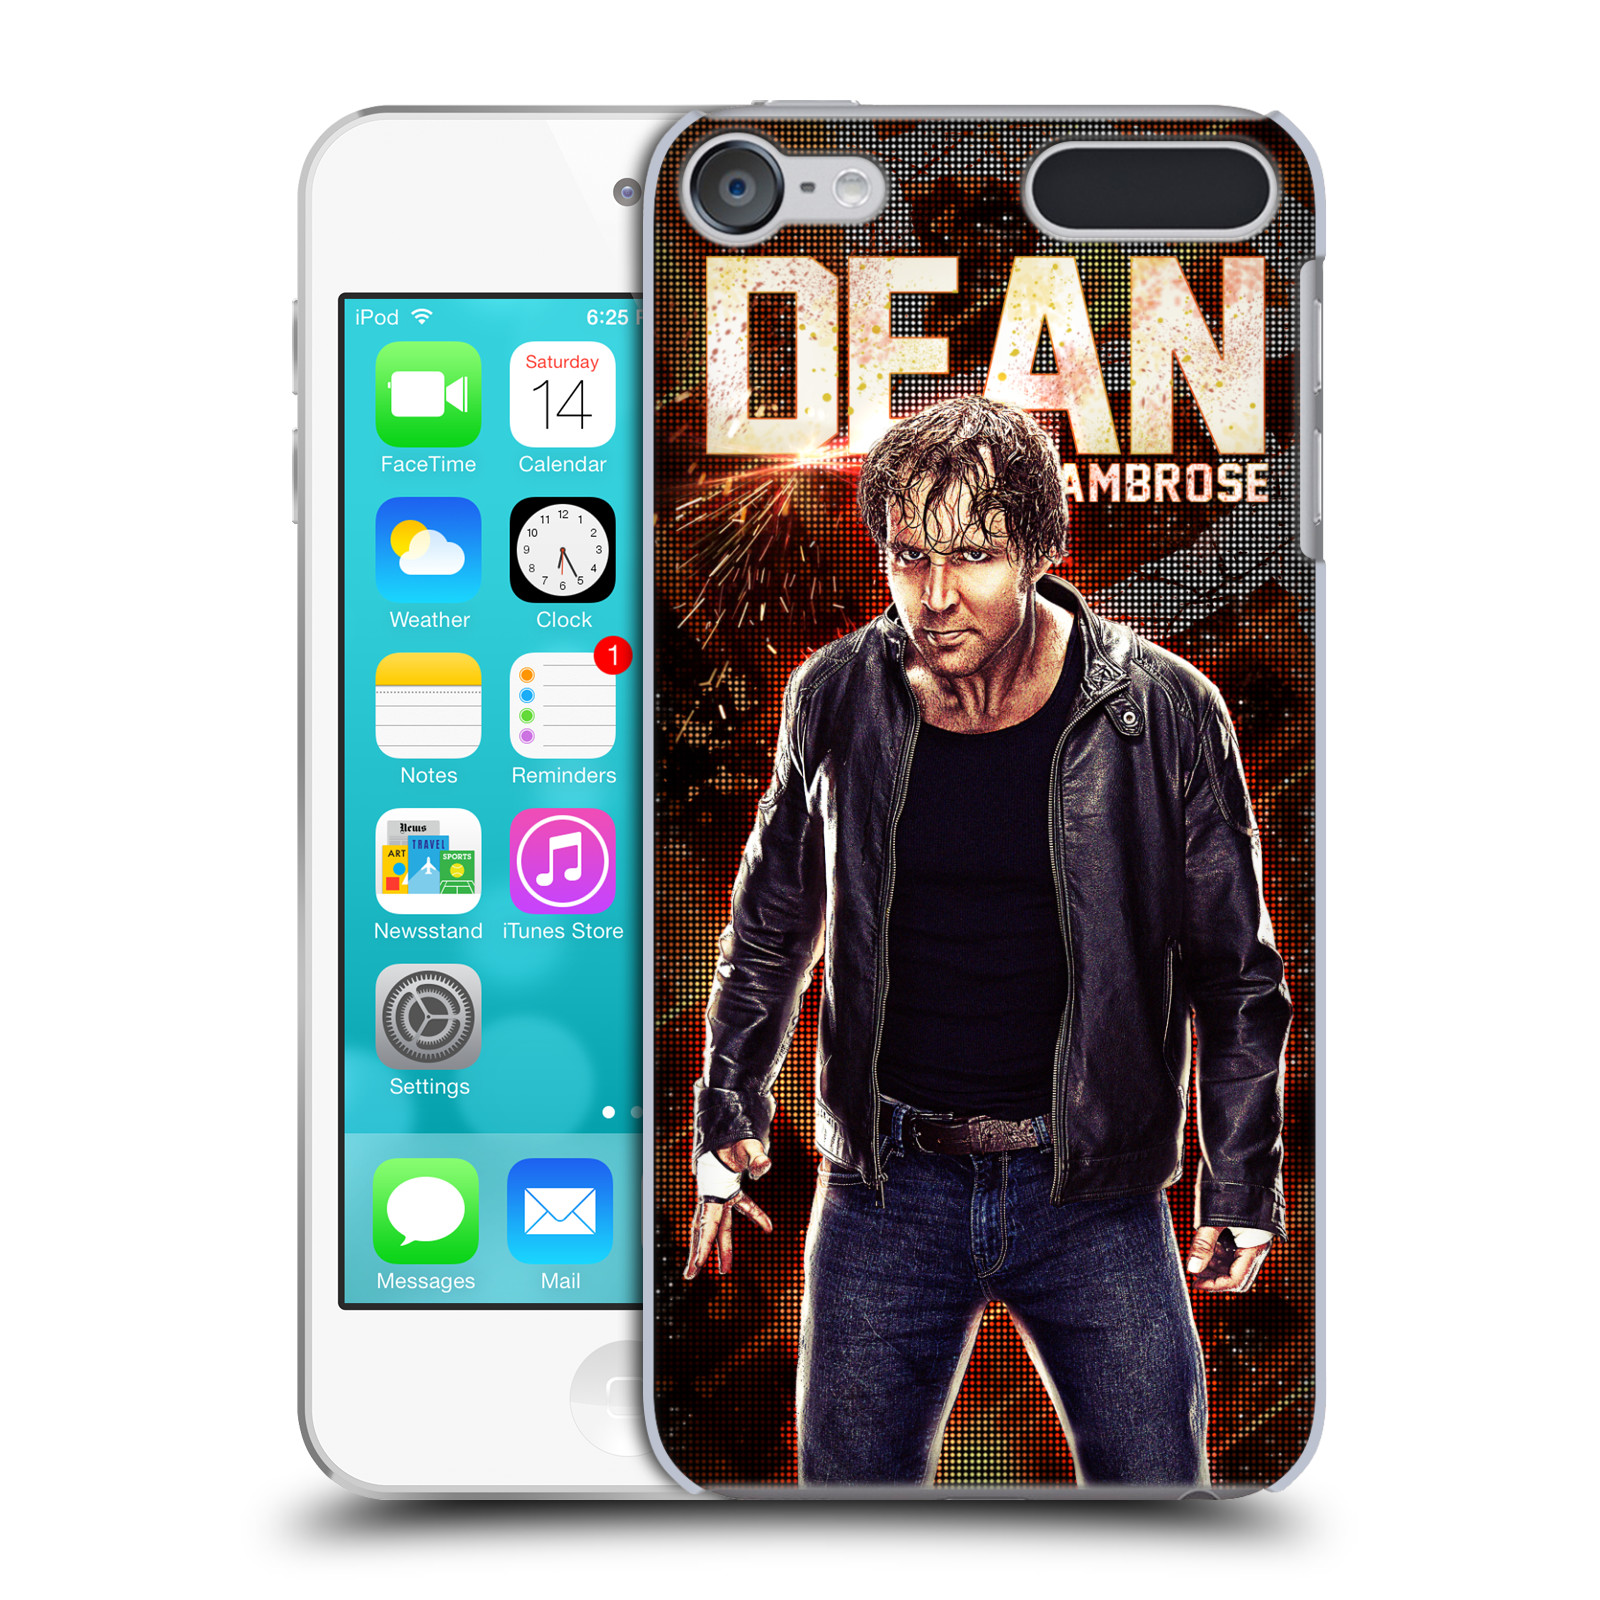 Wwe iPhone Cases & Covers